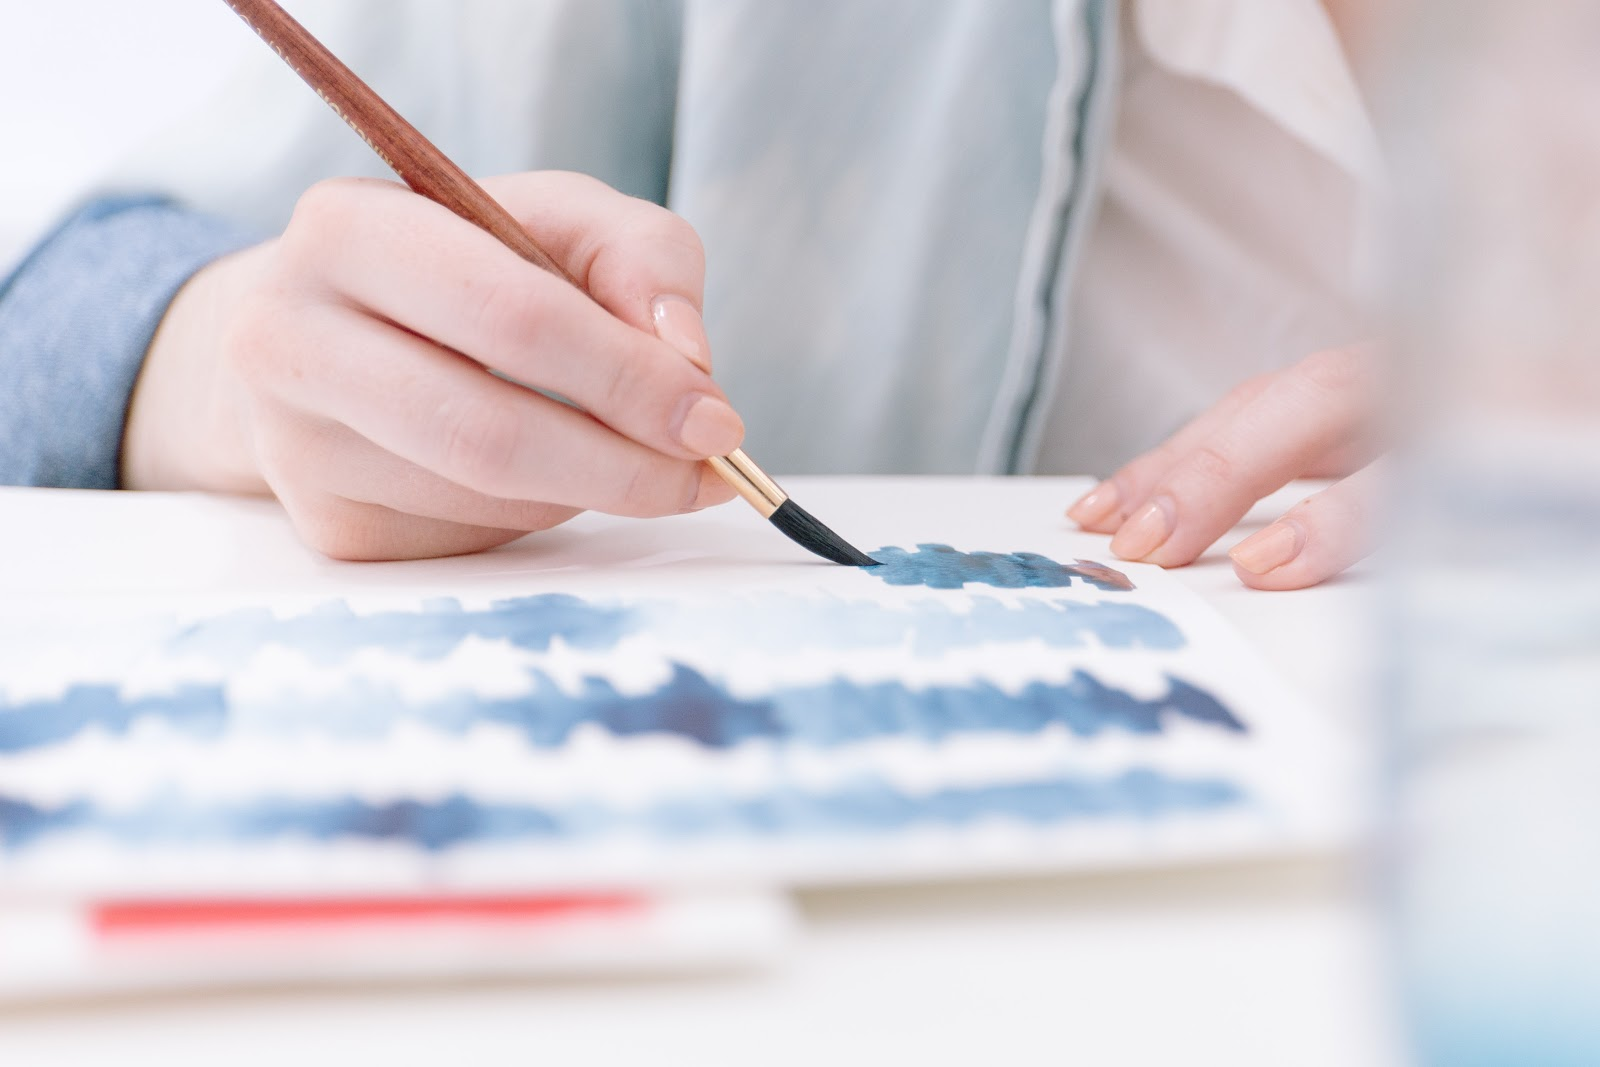 A person painting blue design